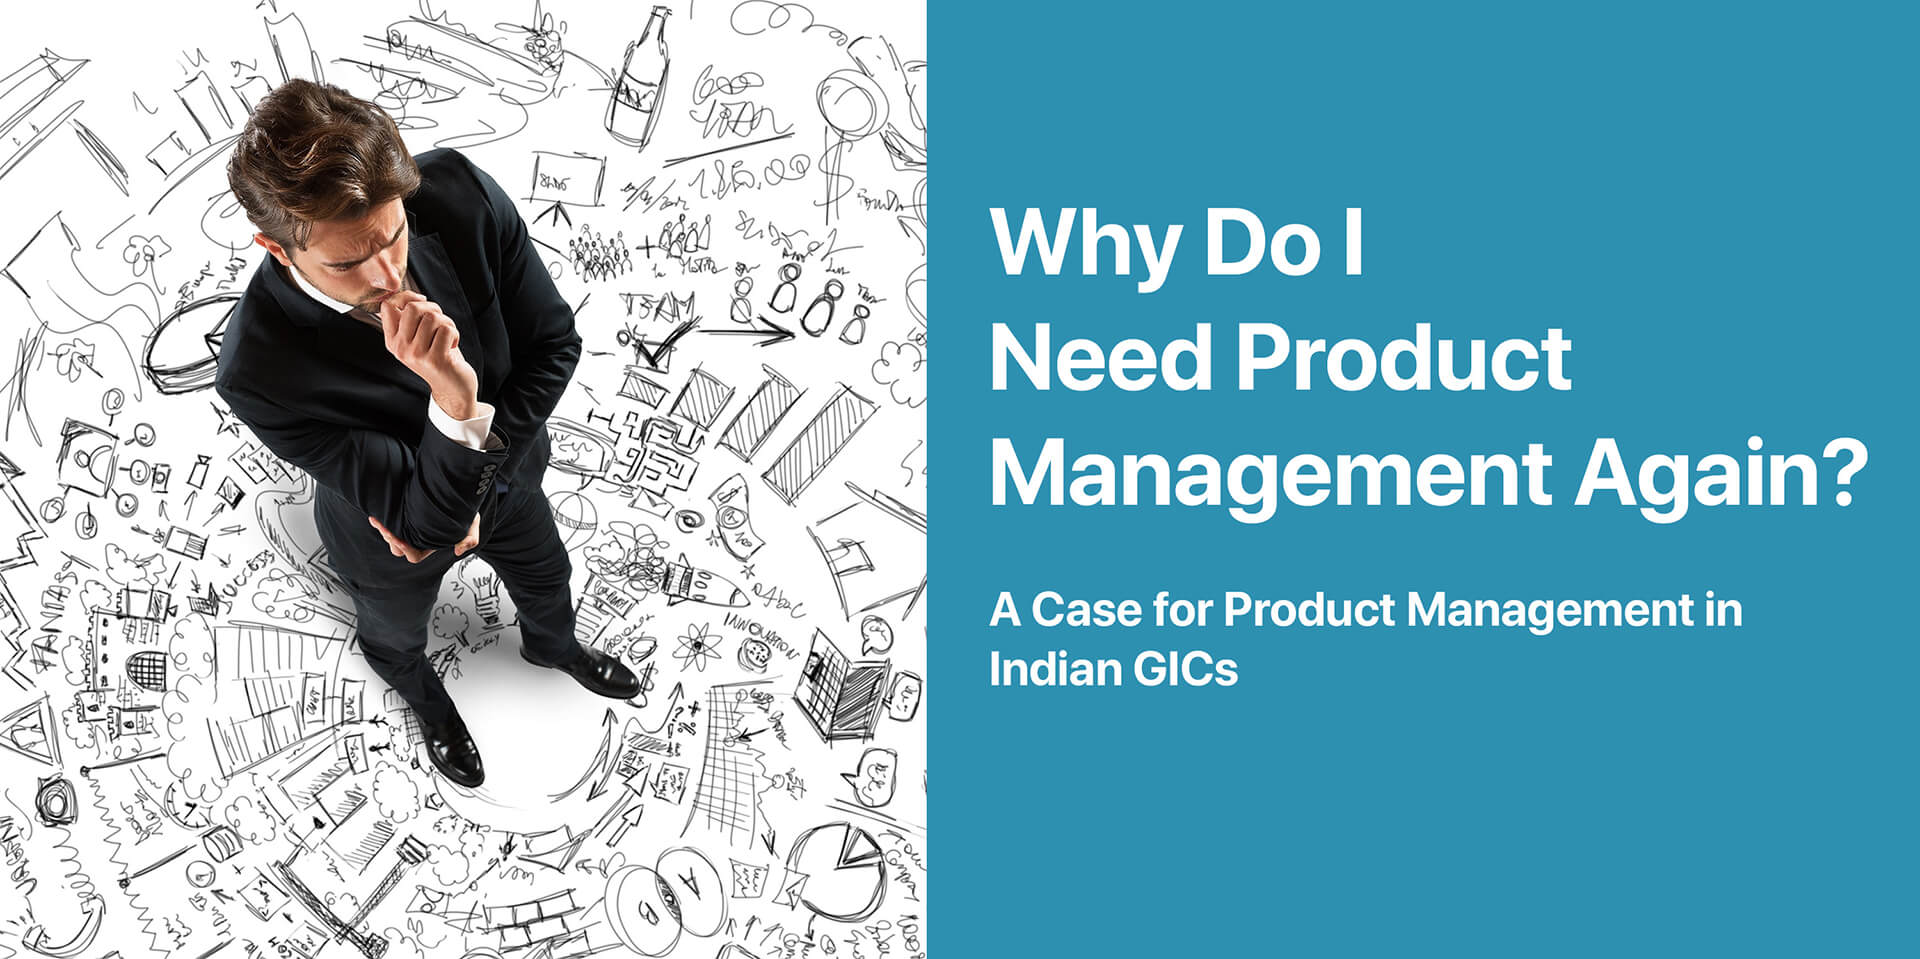 Why Do I Need Product Management Again? A Case For Product Management In Indian GICs